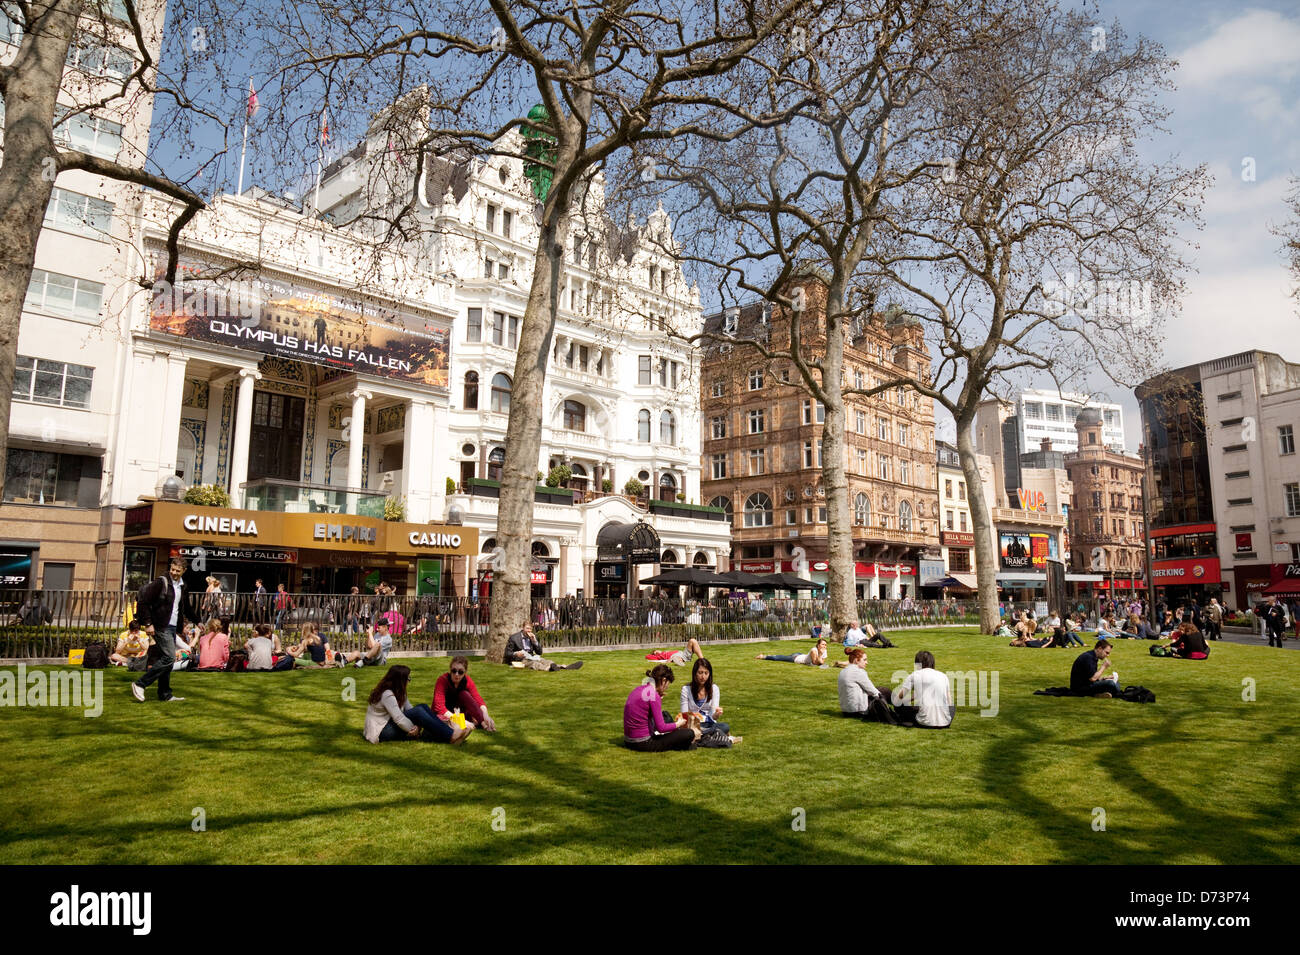 People sitting enjoying the sunshine in spring, Leicester Square, Central London WC2, UK Stock Photo